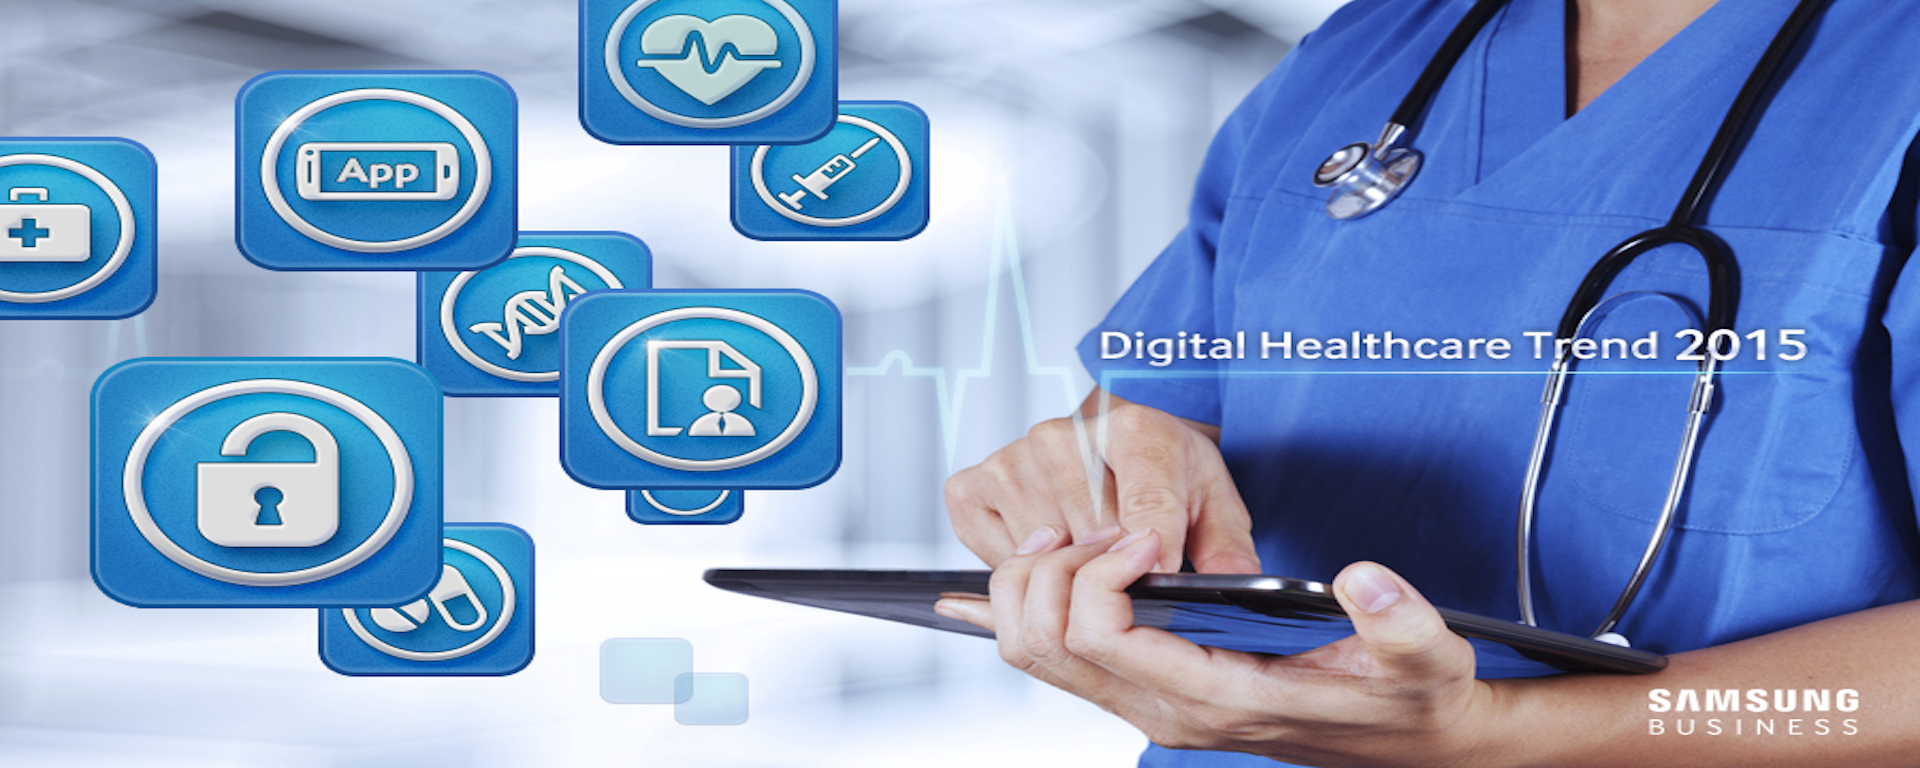 2015 Digital Healthcare Trends